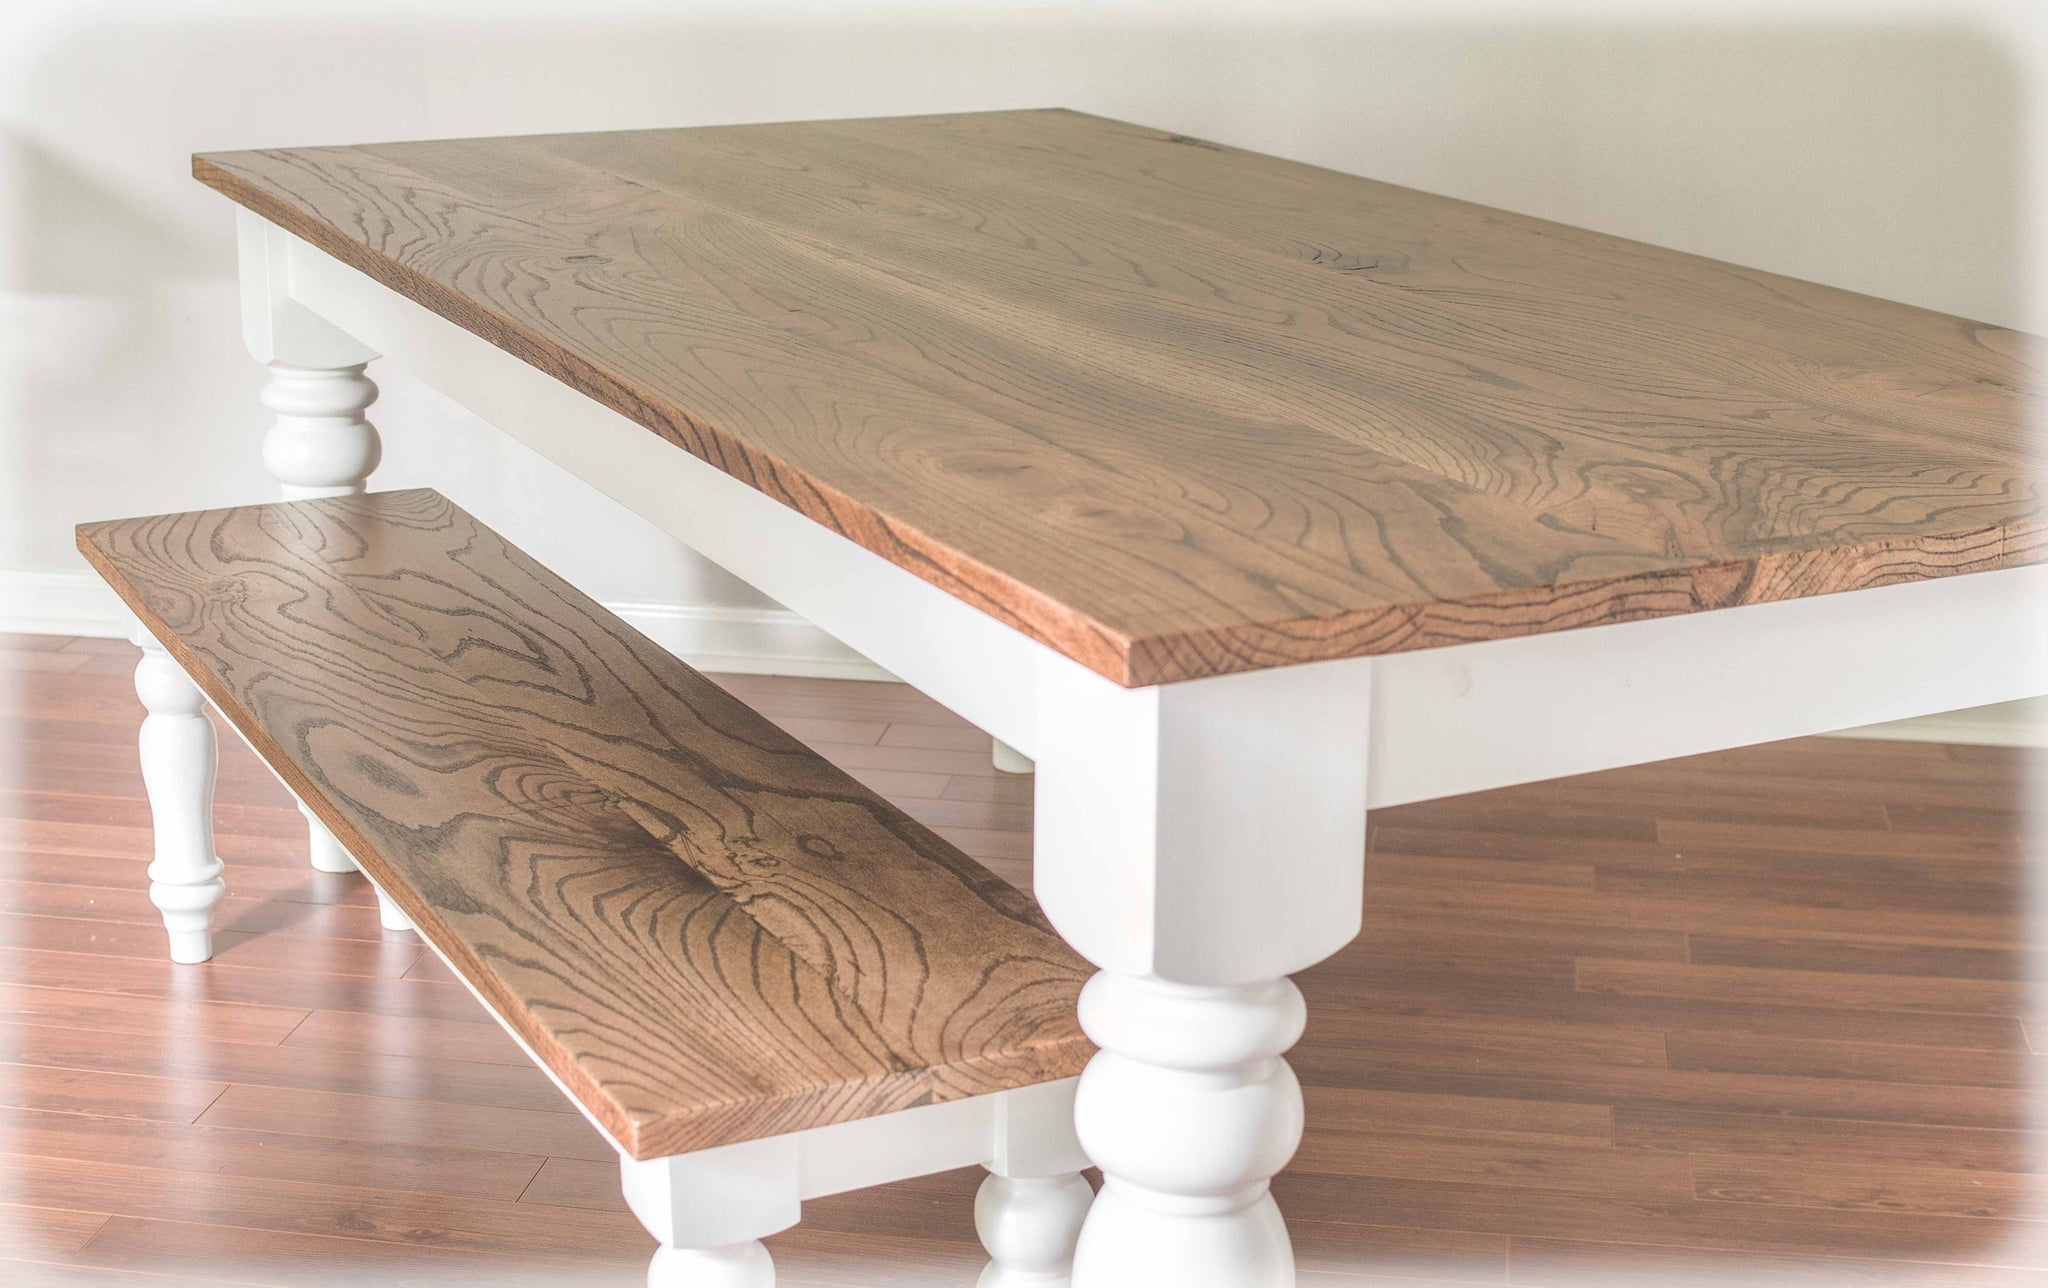 Peachy Country Dining Table W Matching Farm Bench Custom Order Gamerscity Chair Design For Home Gamerscityorg